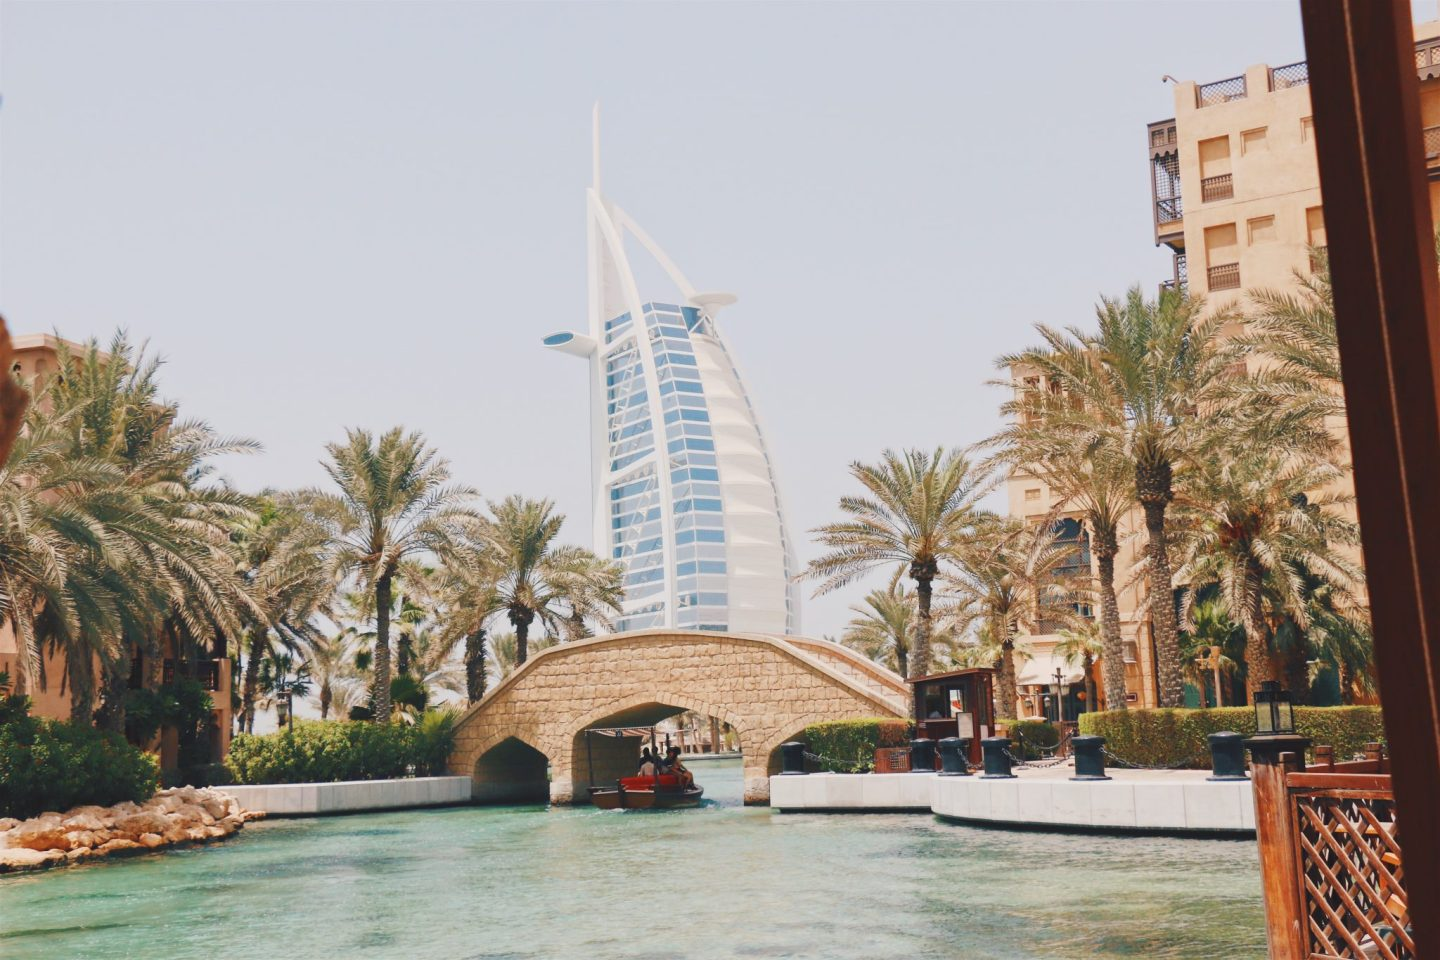 Most Instagrammable Spots in Dubai